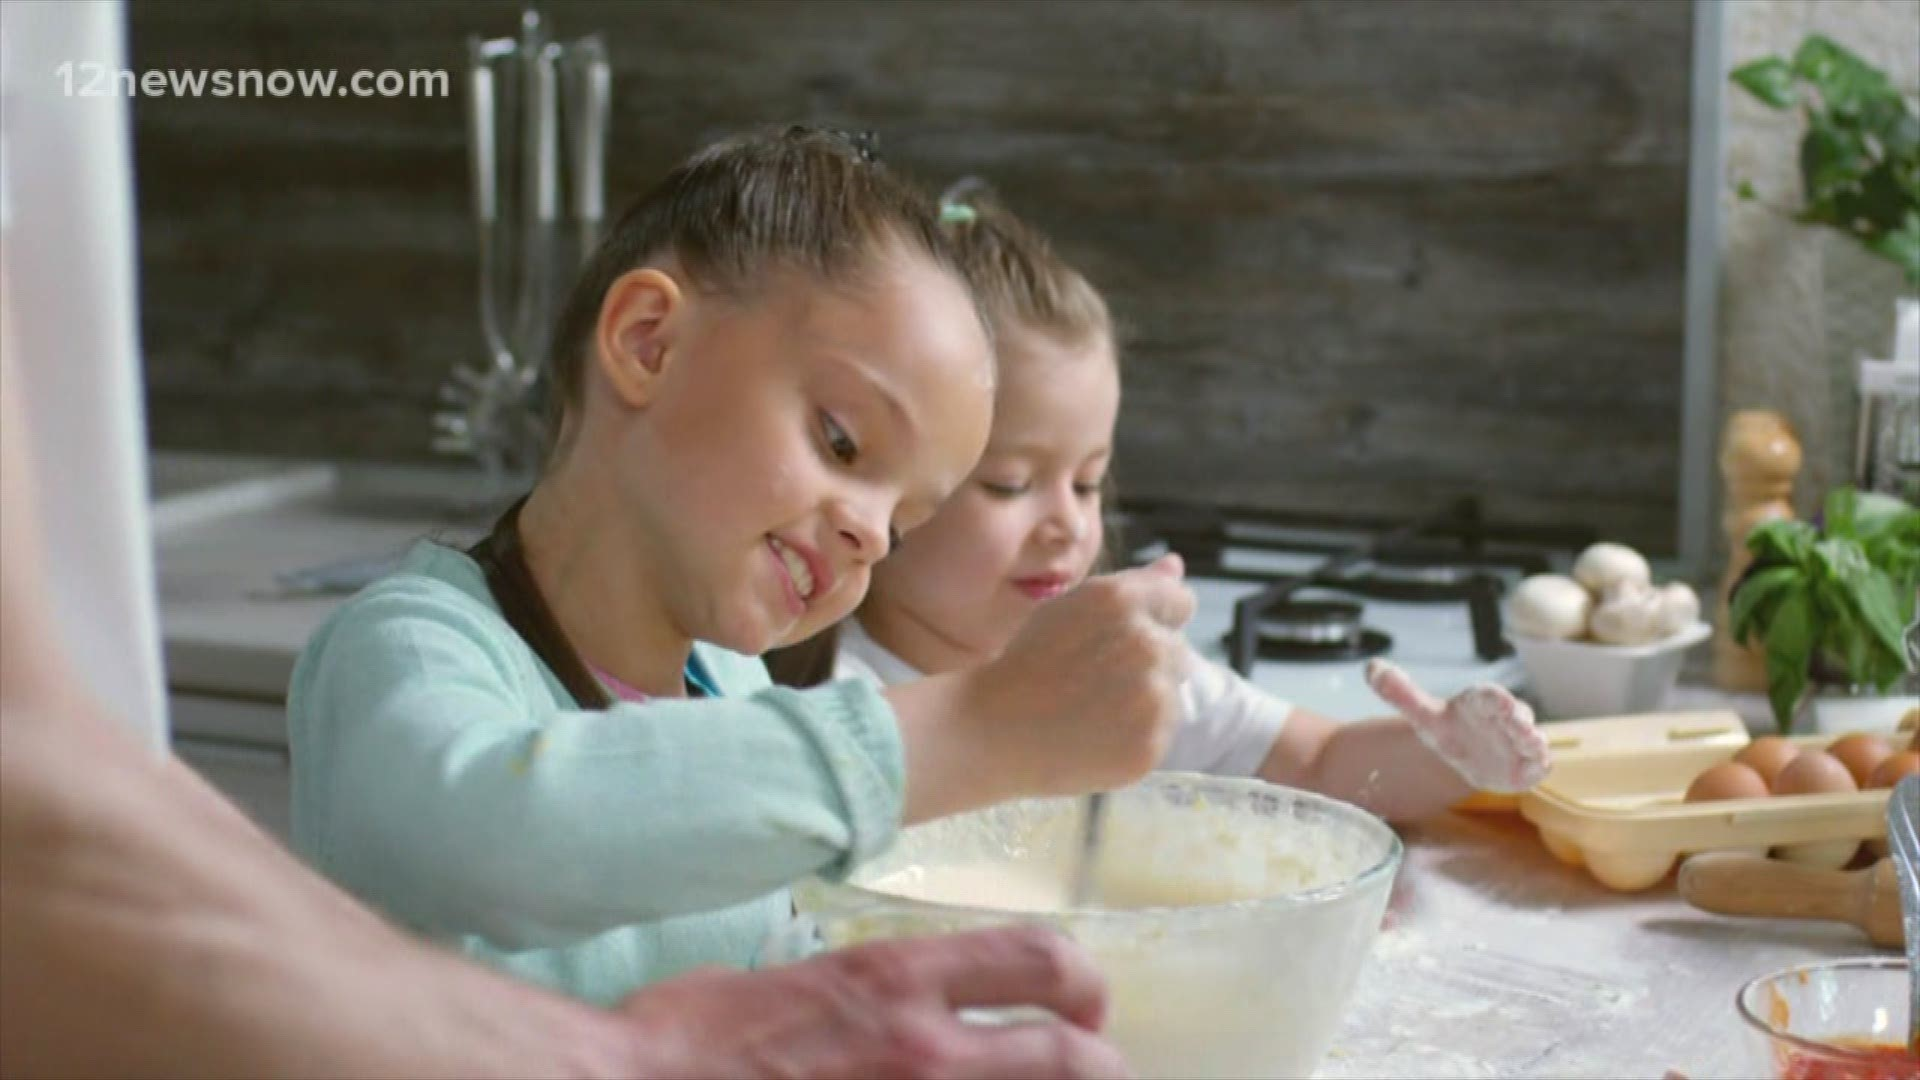 CDC warns against eating raw cookie dough | 12newsnow.com